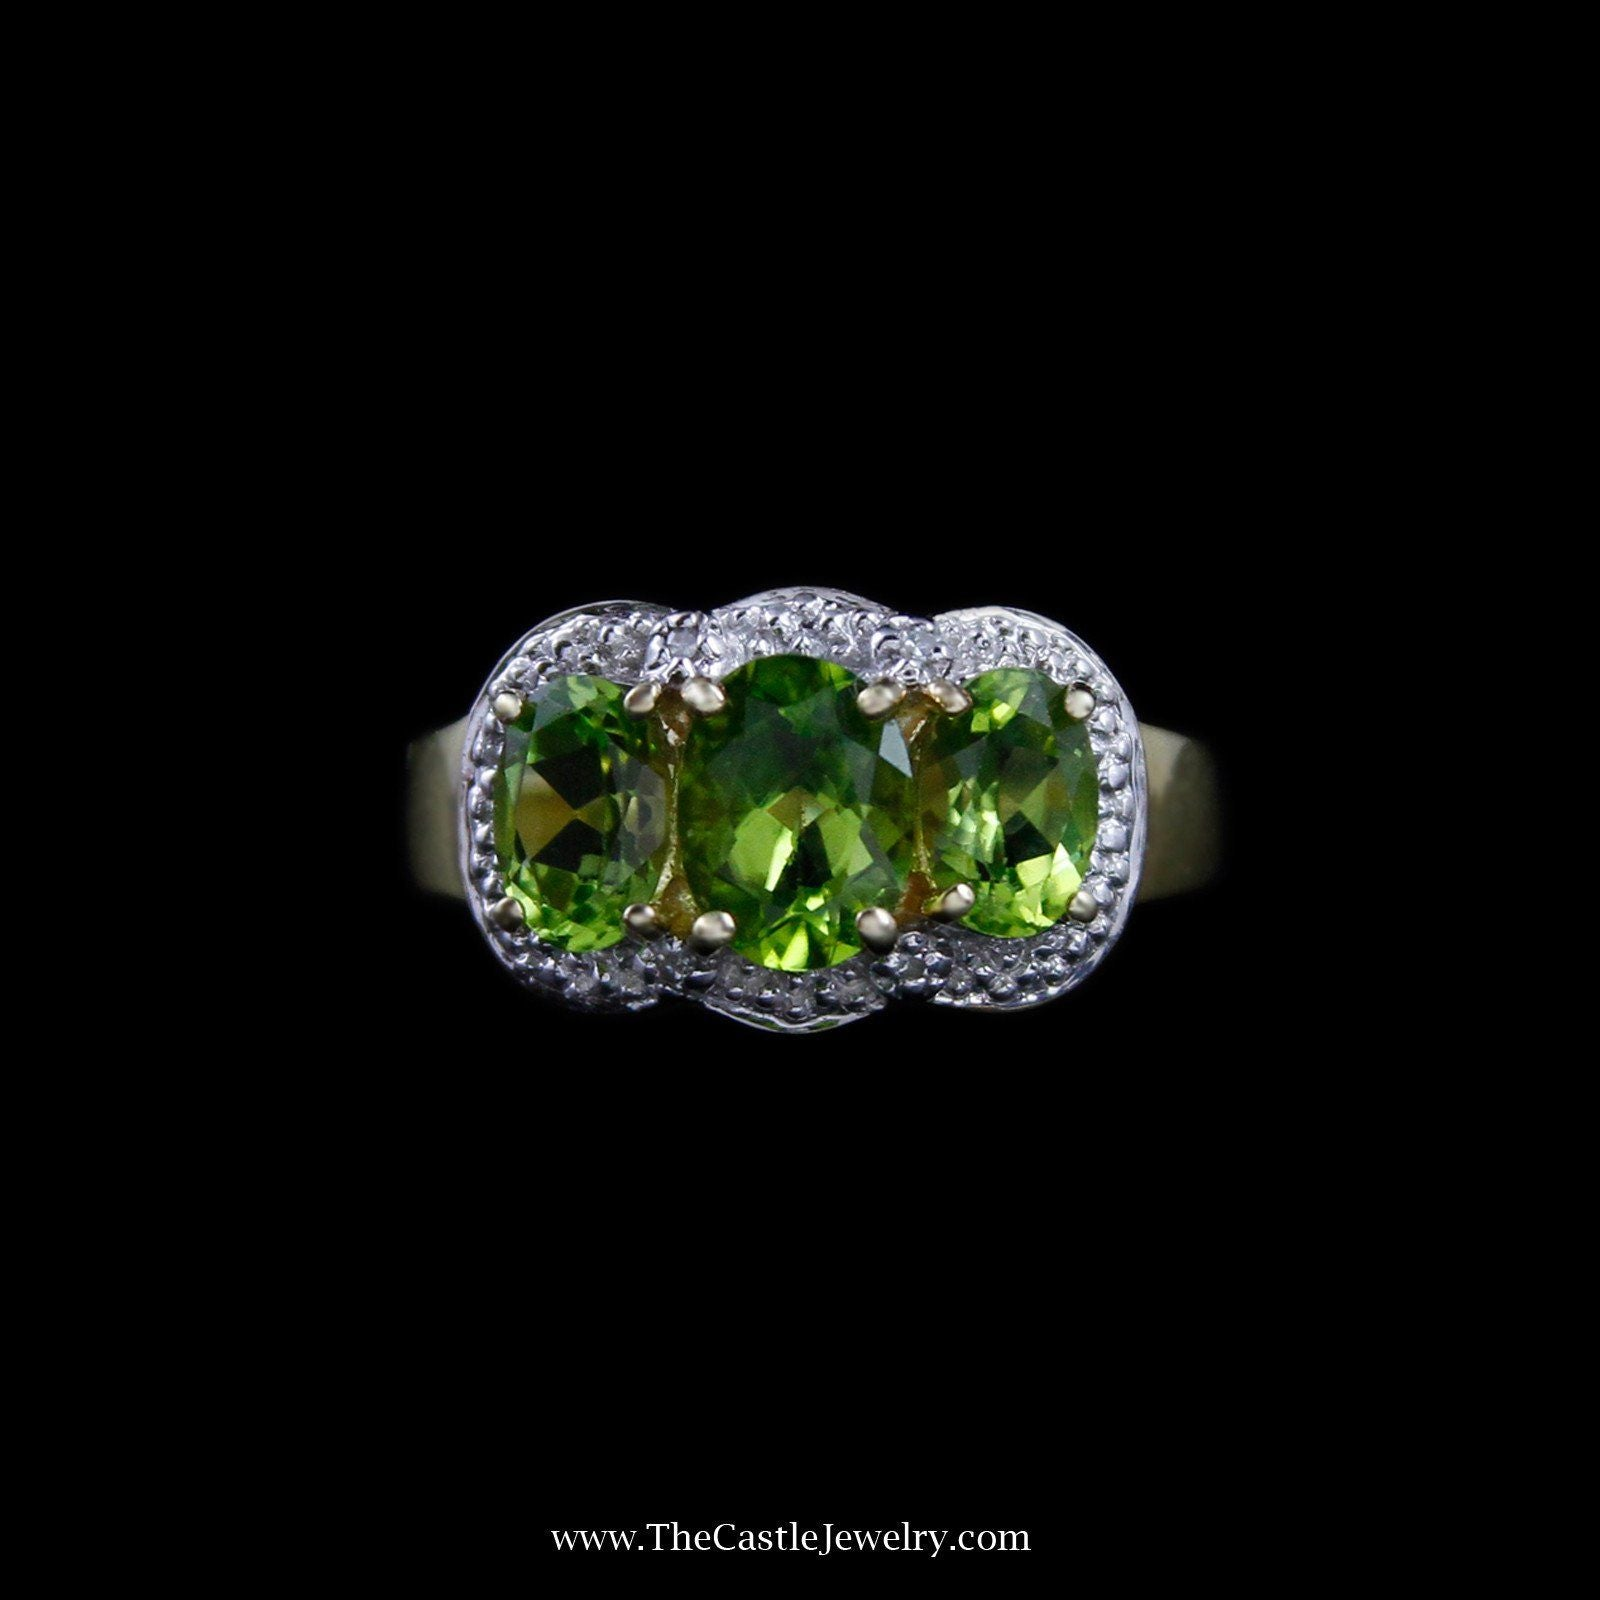 Stunning Triple Oval Peridot Ring with Diamond Accent Halo in 10K Yellow Gold